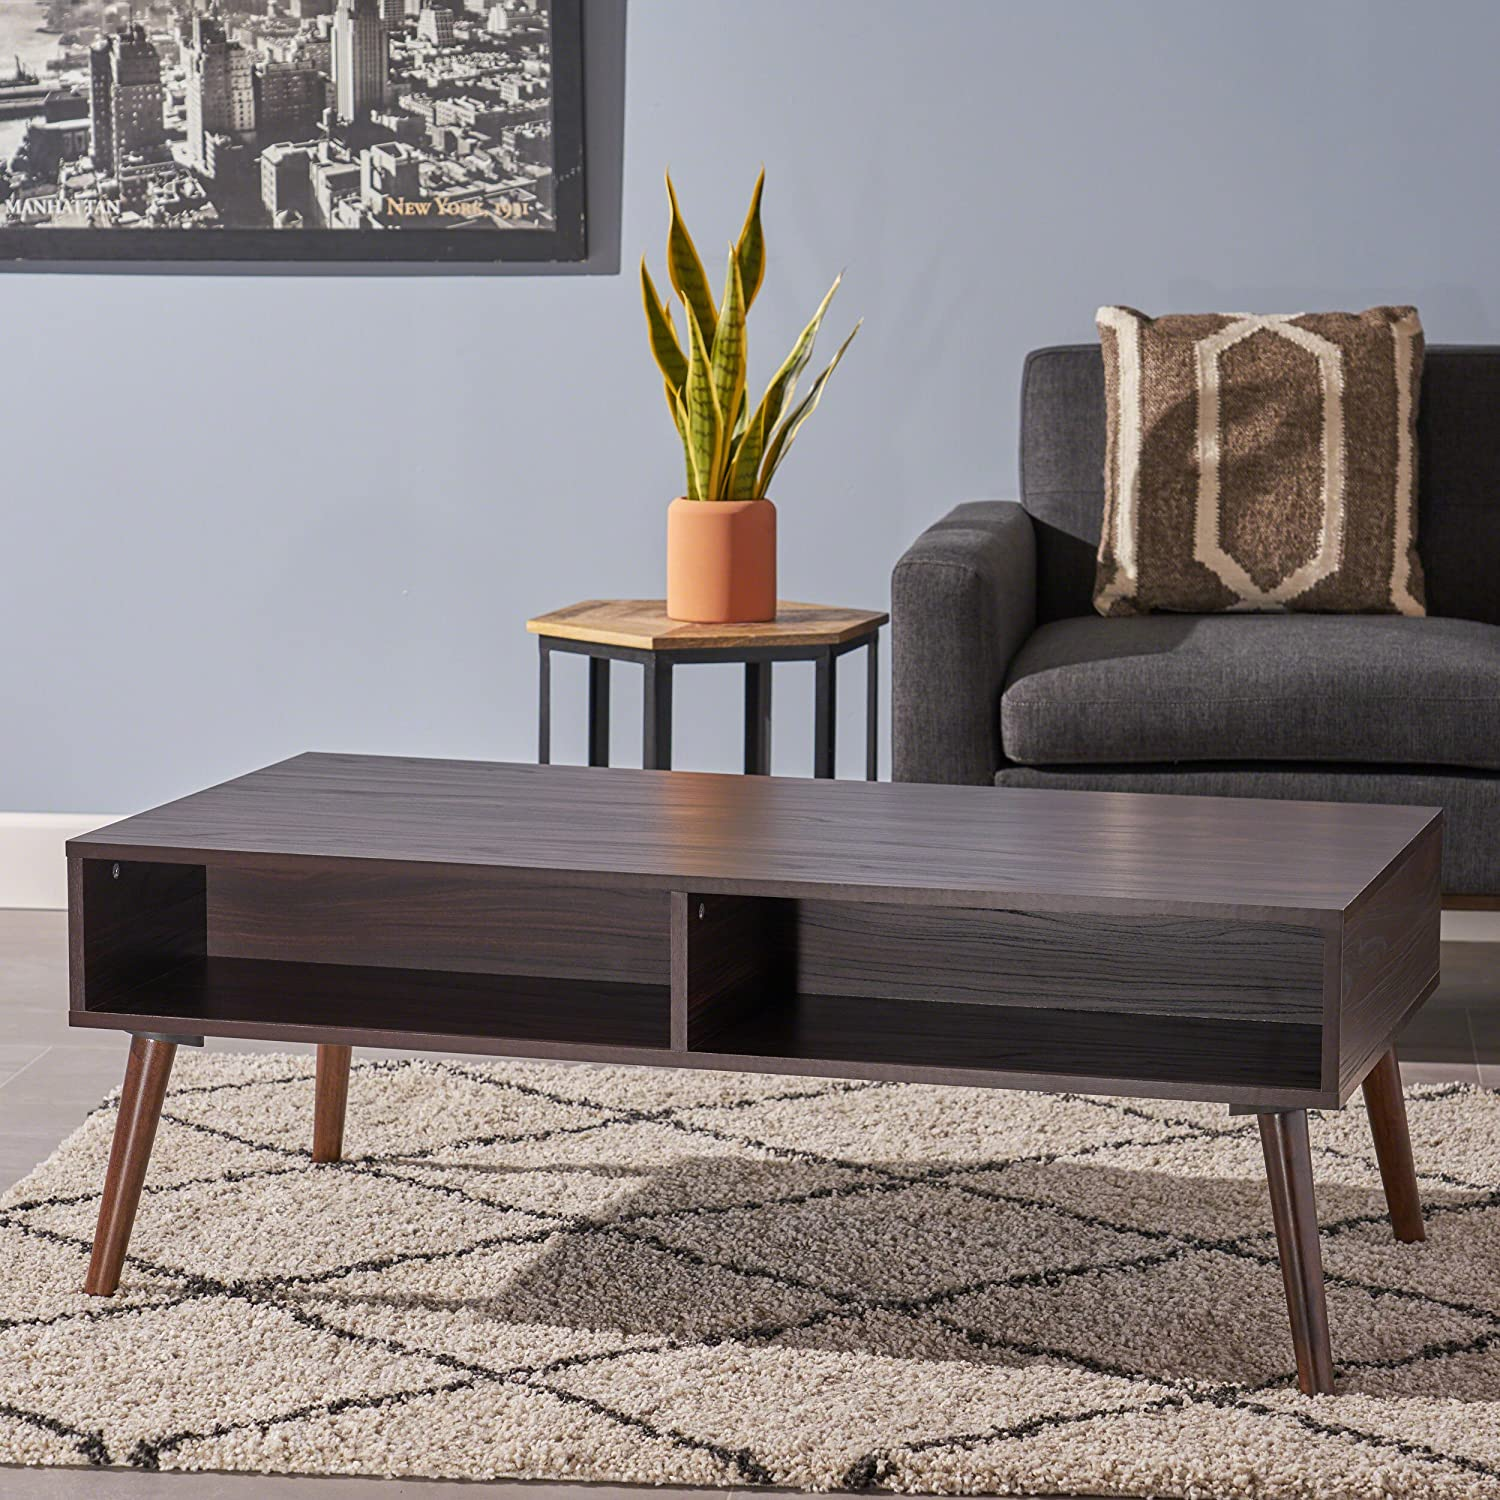 Great Deal Furniture 304399 Andy Mid Century Modern Fuax Wood Overlay Coffee Table, Dark Walnut